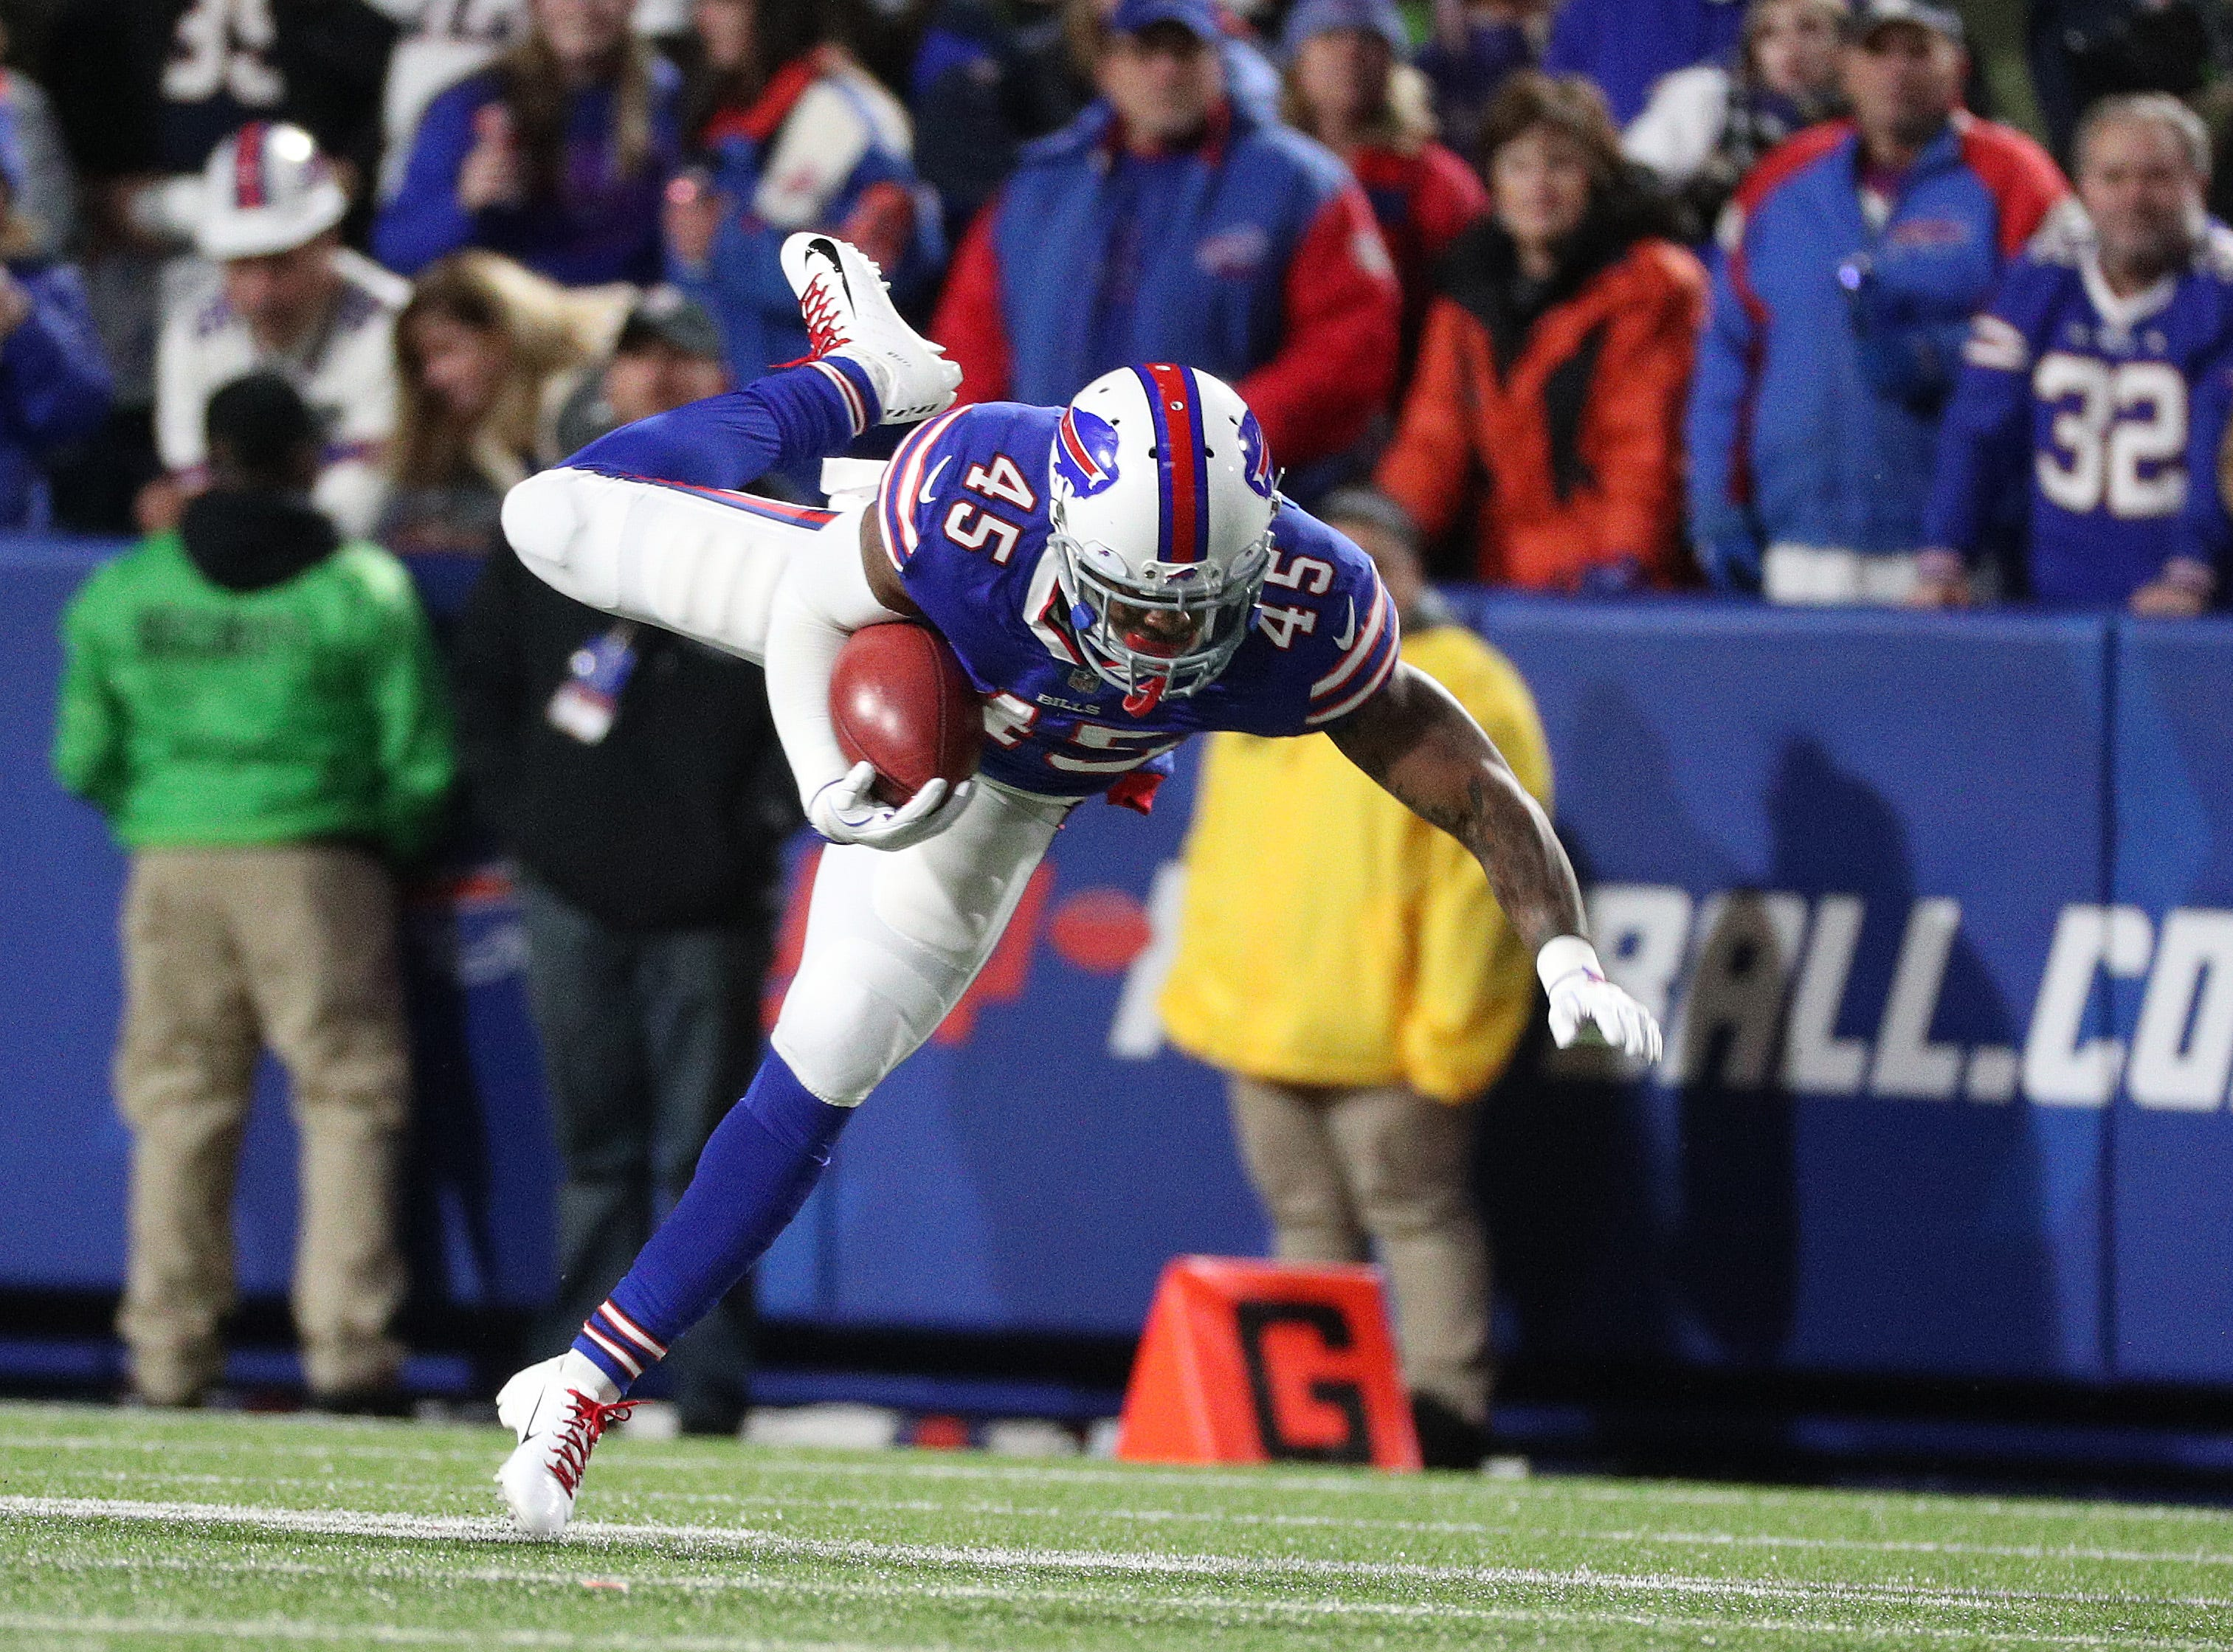 Bills kickoff returner Marcus Murphy is upended after a good return.